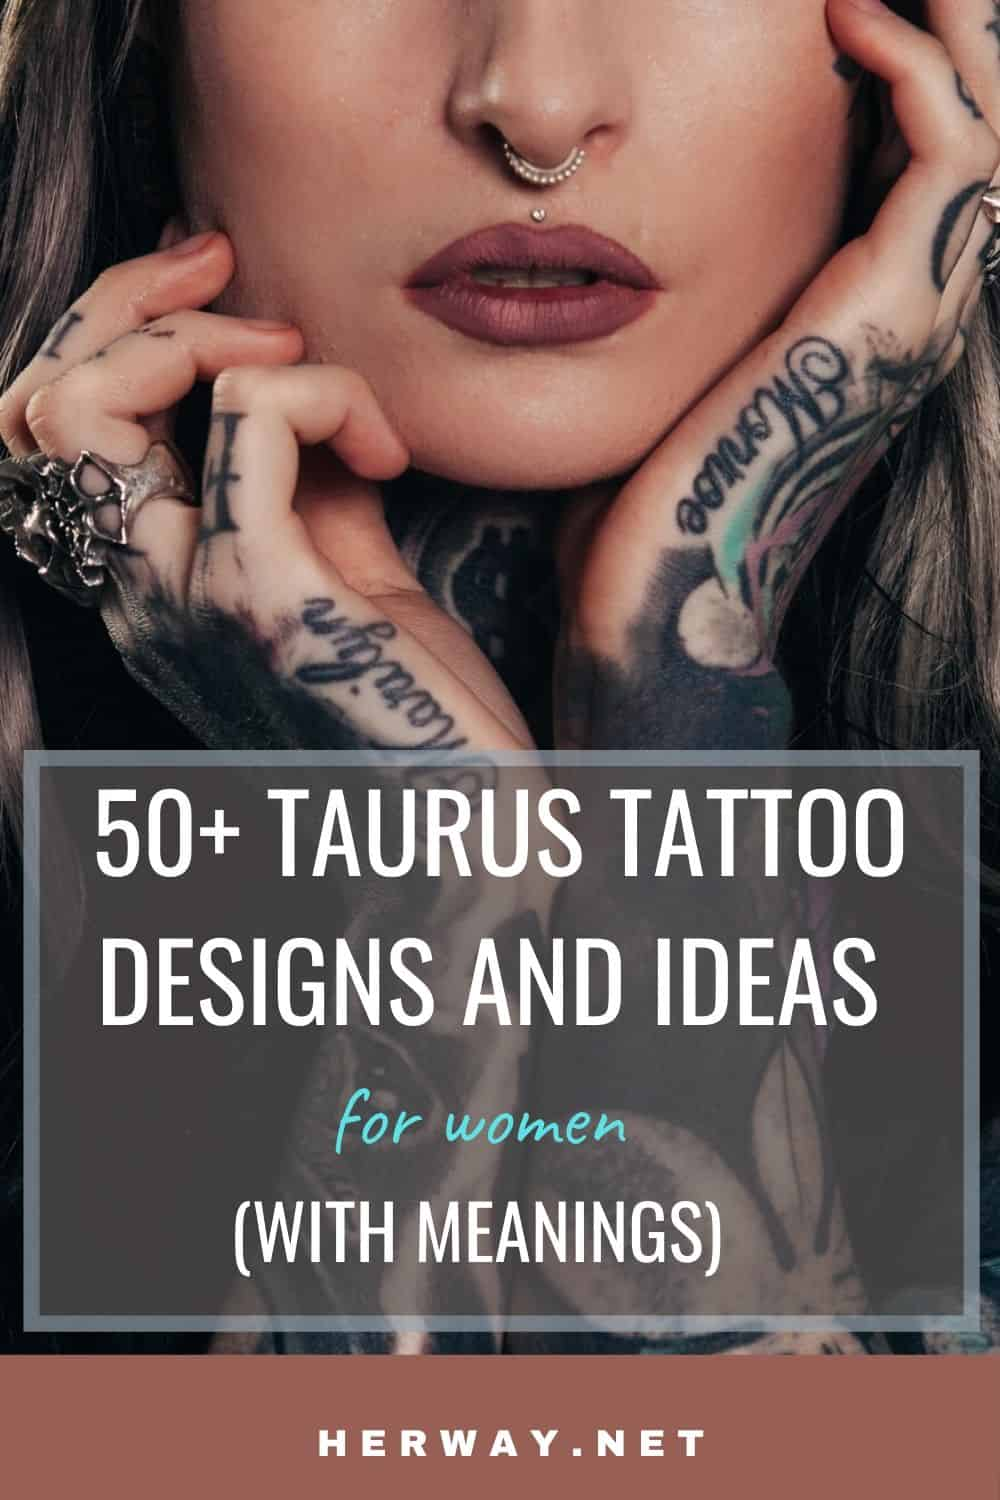 50+ Taurus Tattoo Designs And Ideas For Women (With Meanings) Pinterest